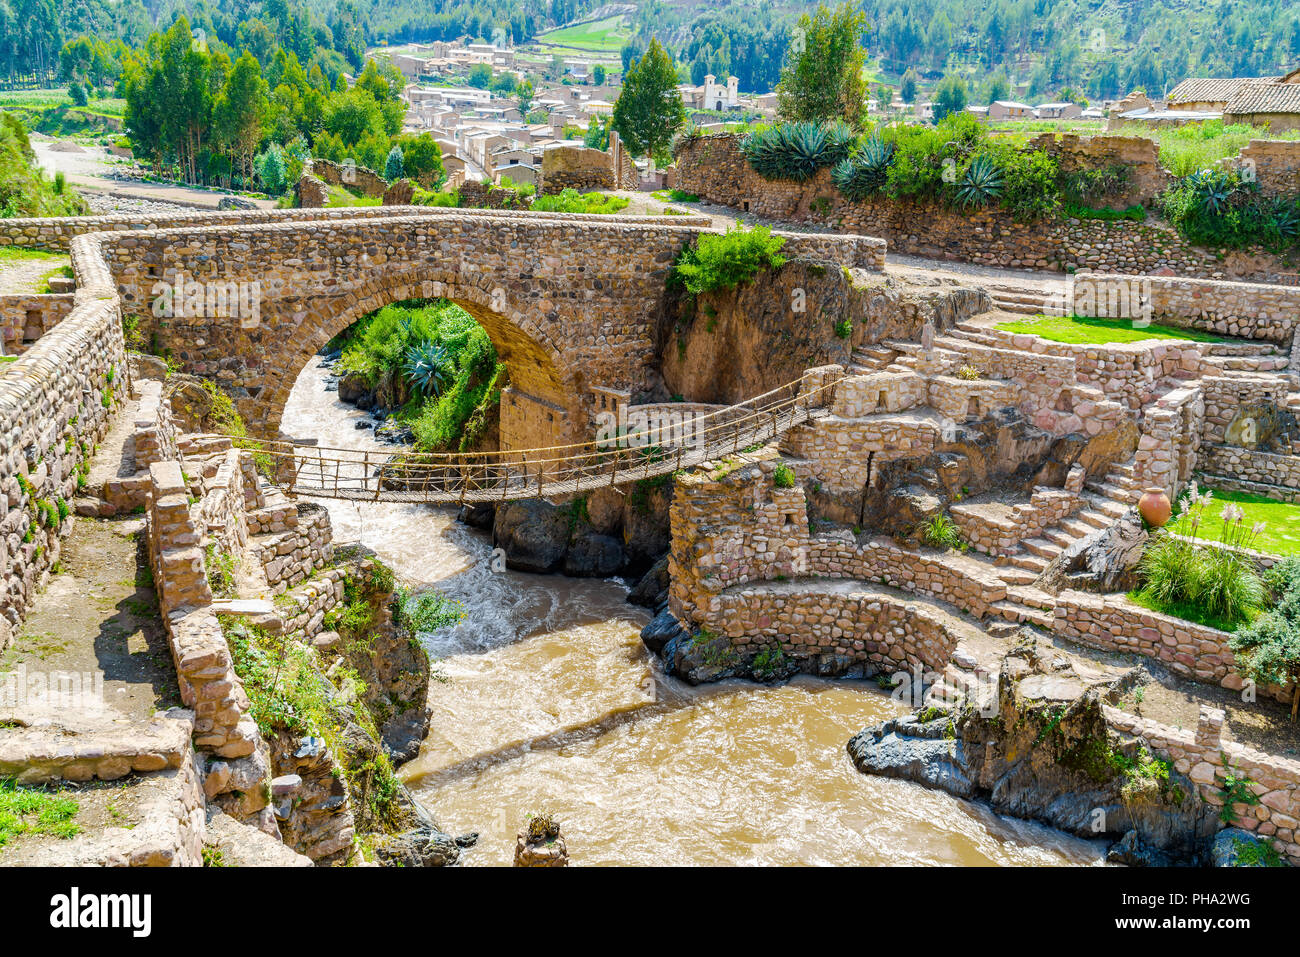 Pre-Inca Leather Suspension Bridge - Stock Image